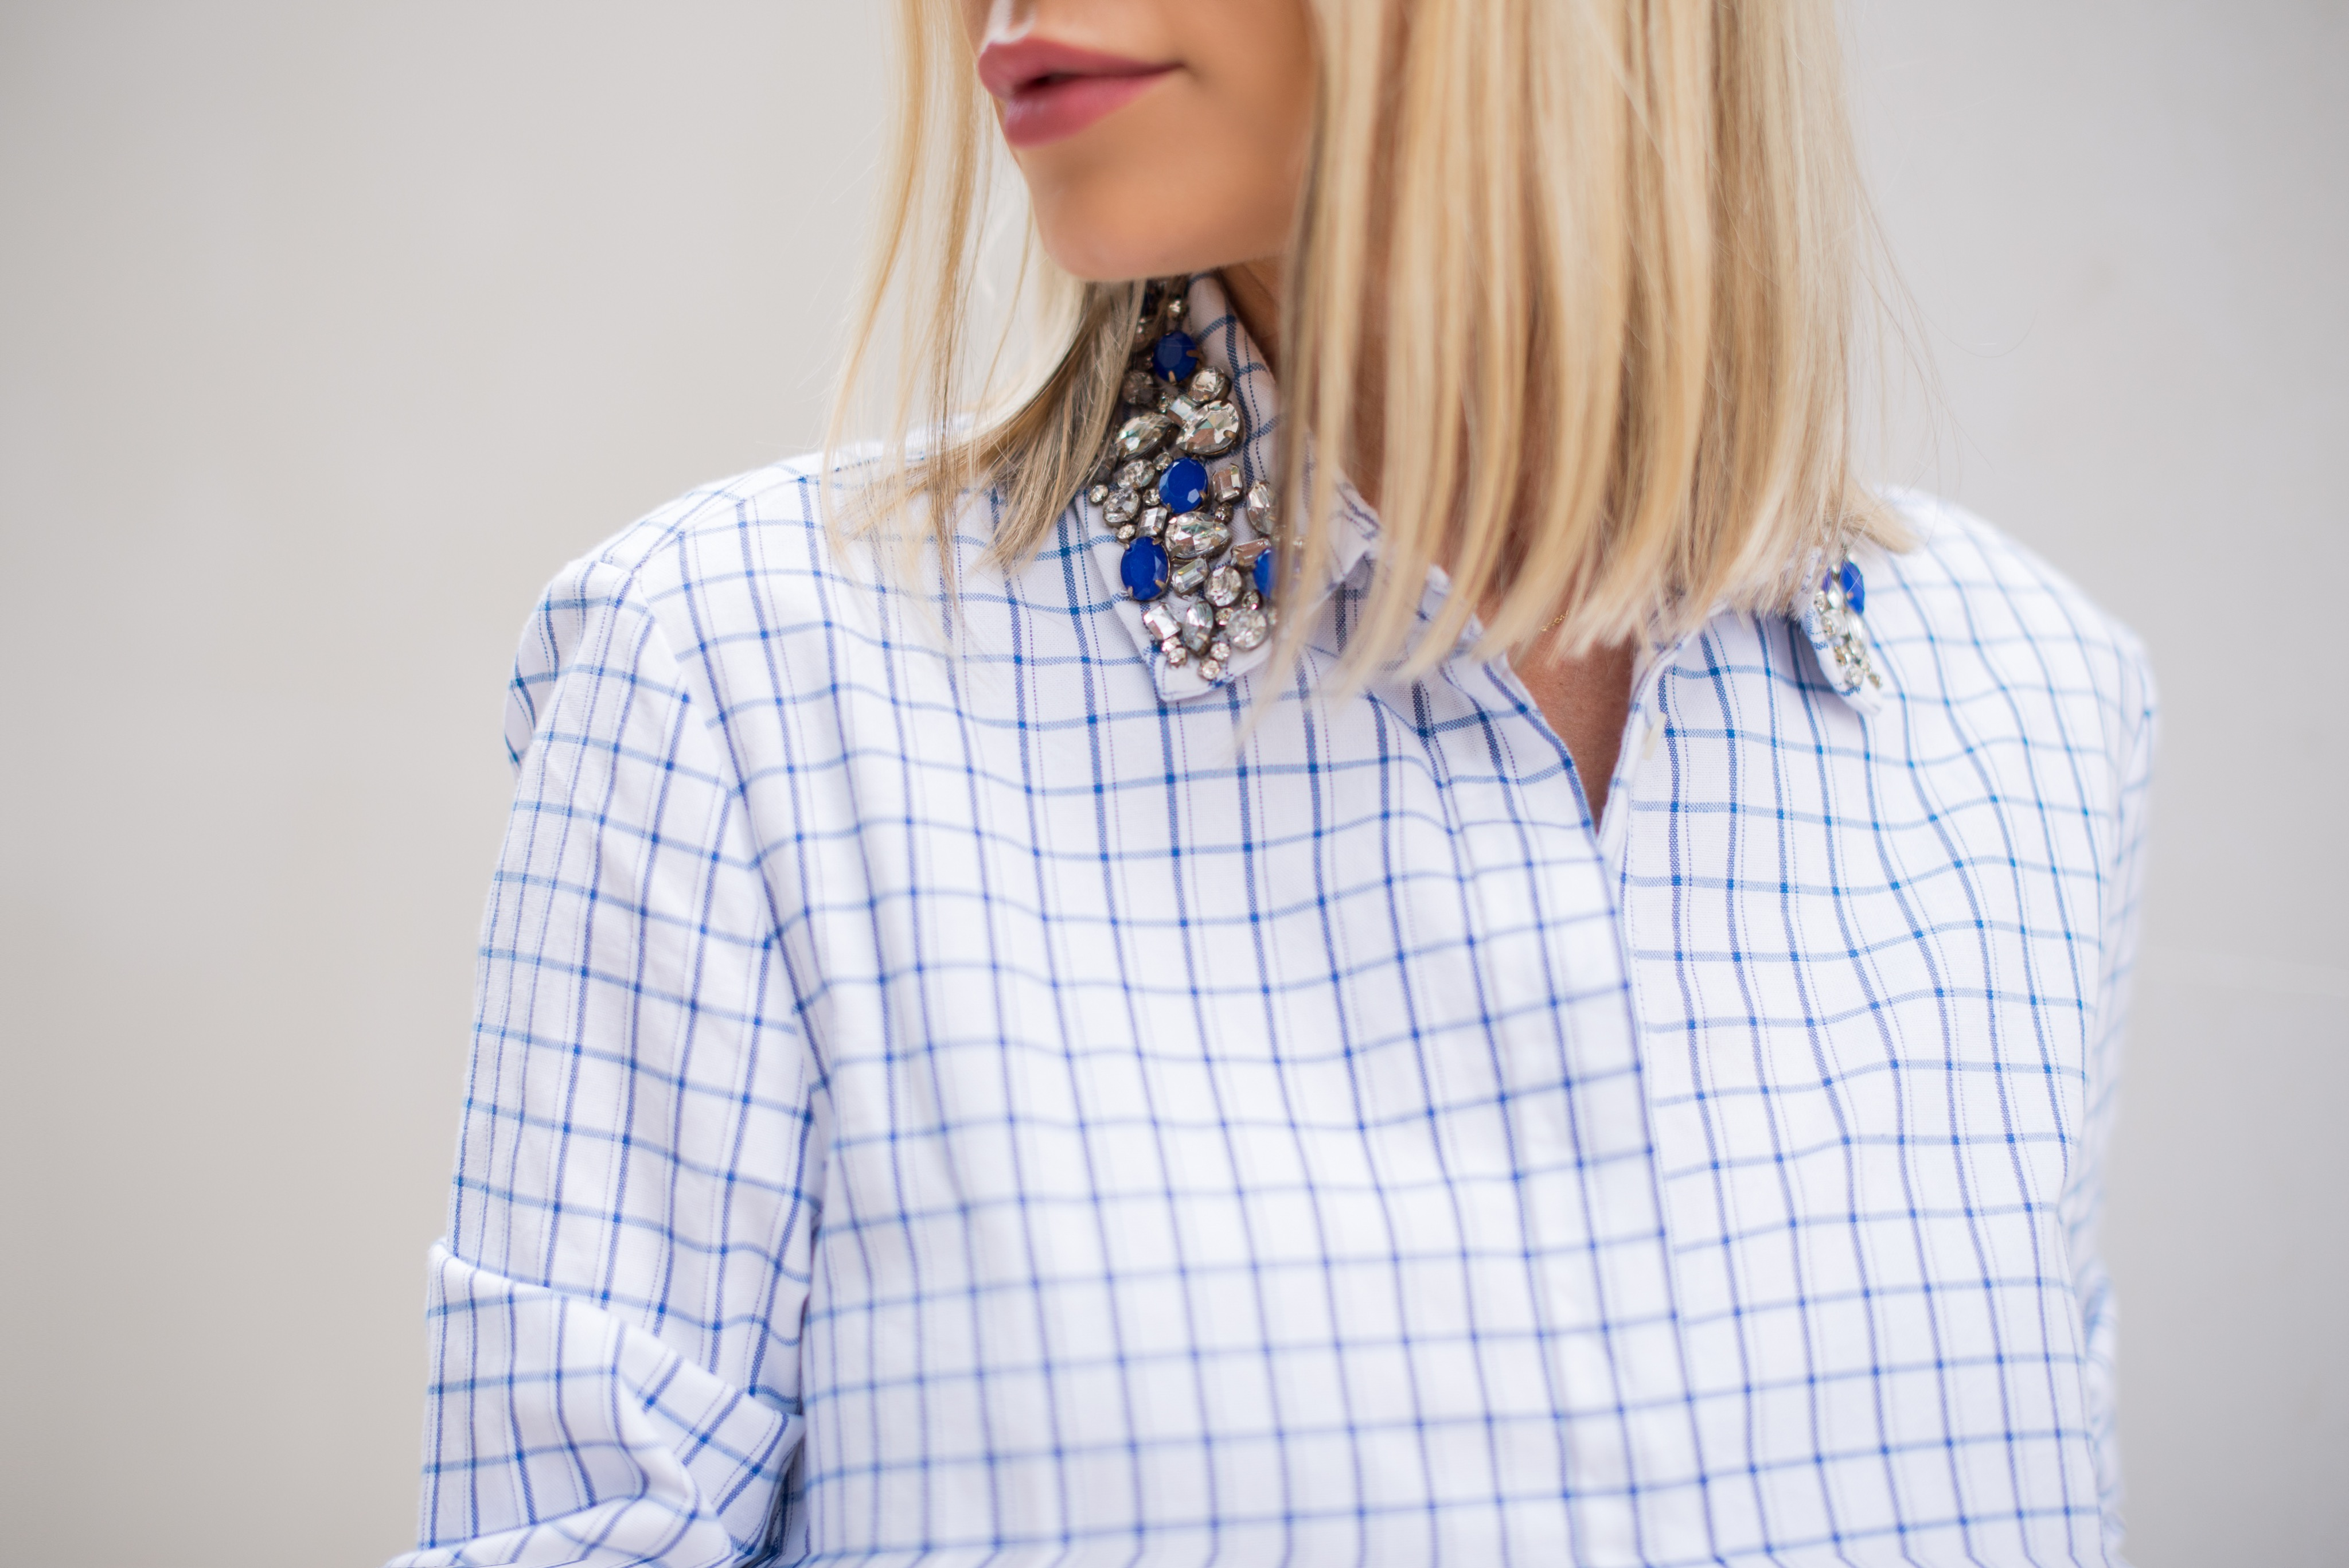 Embellished collars all the way